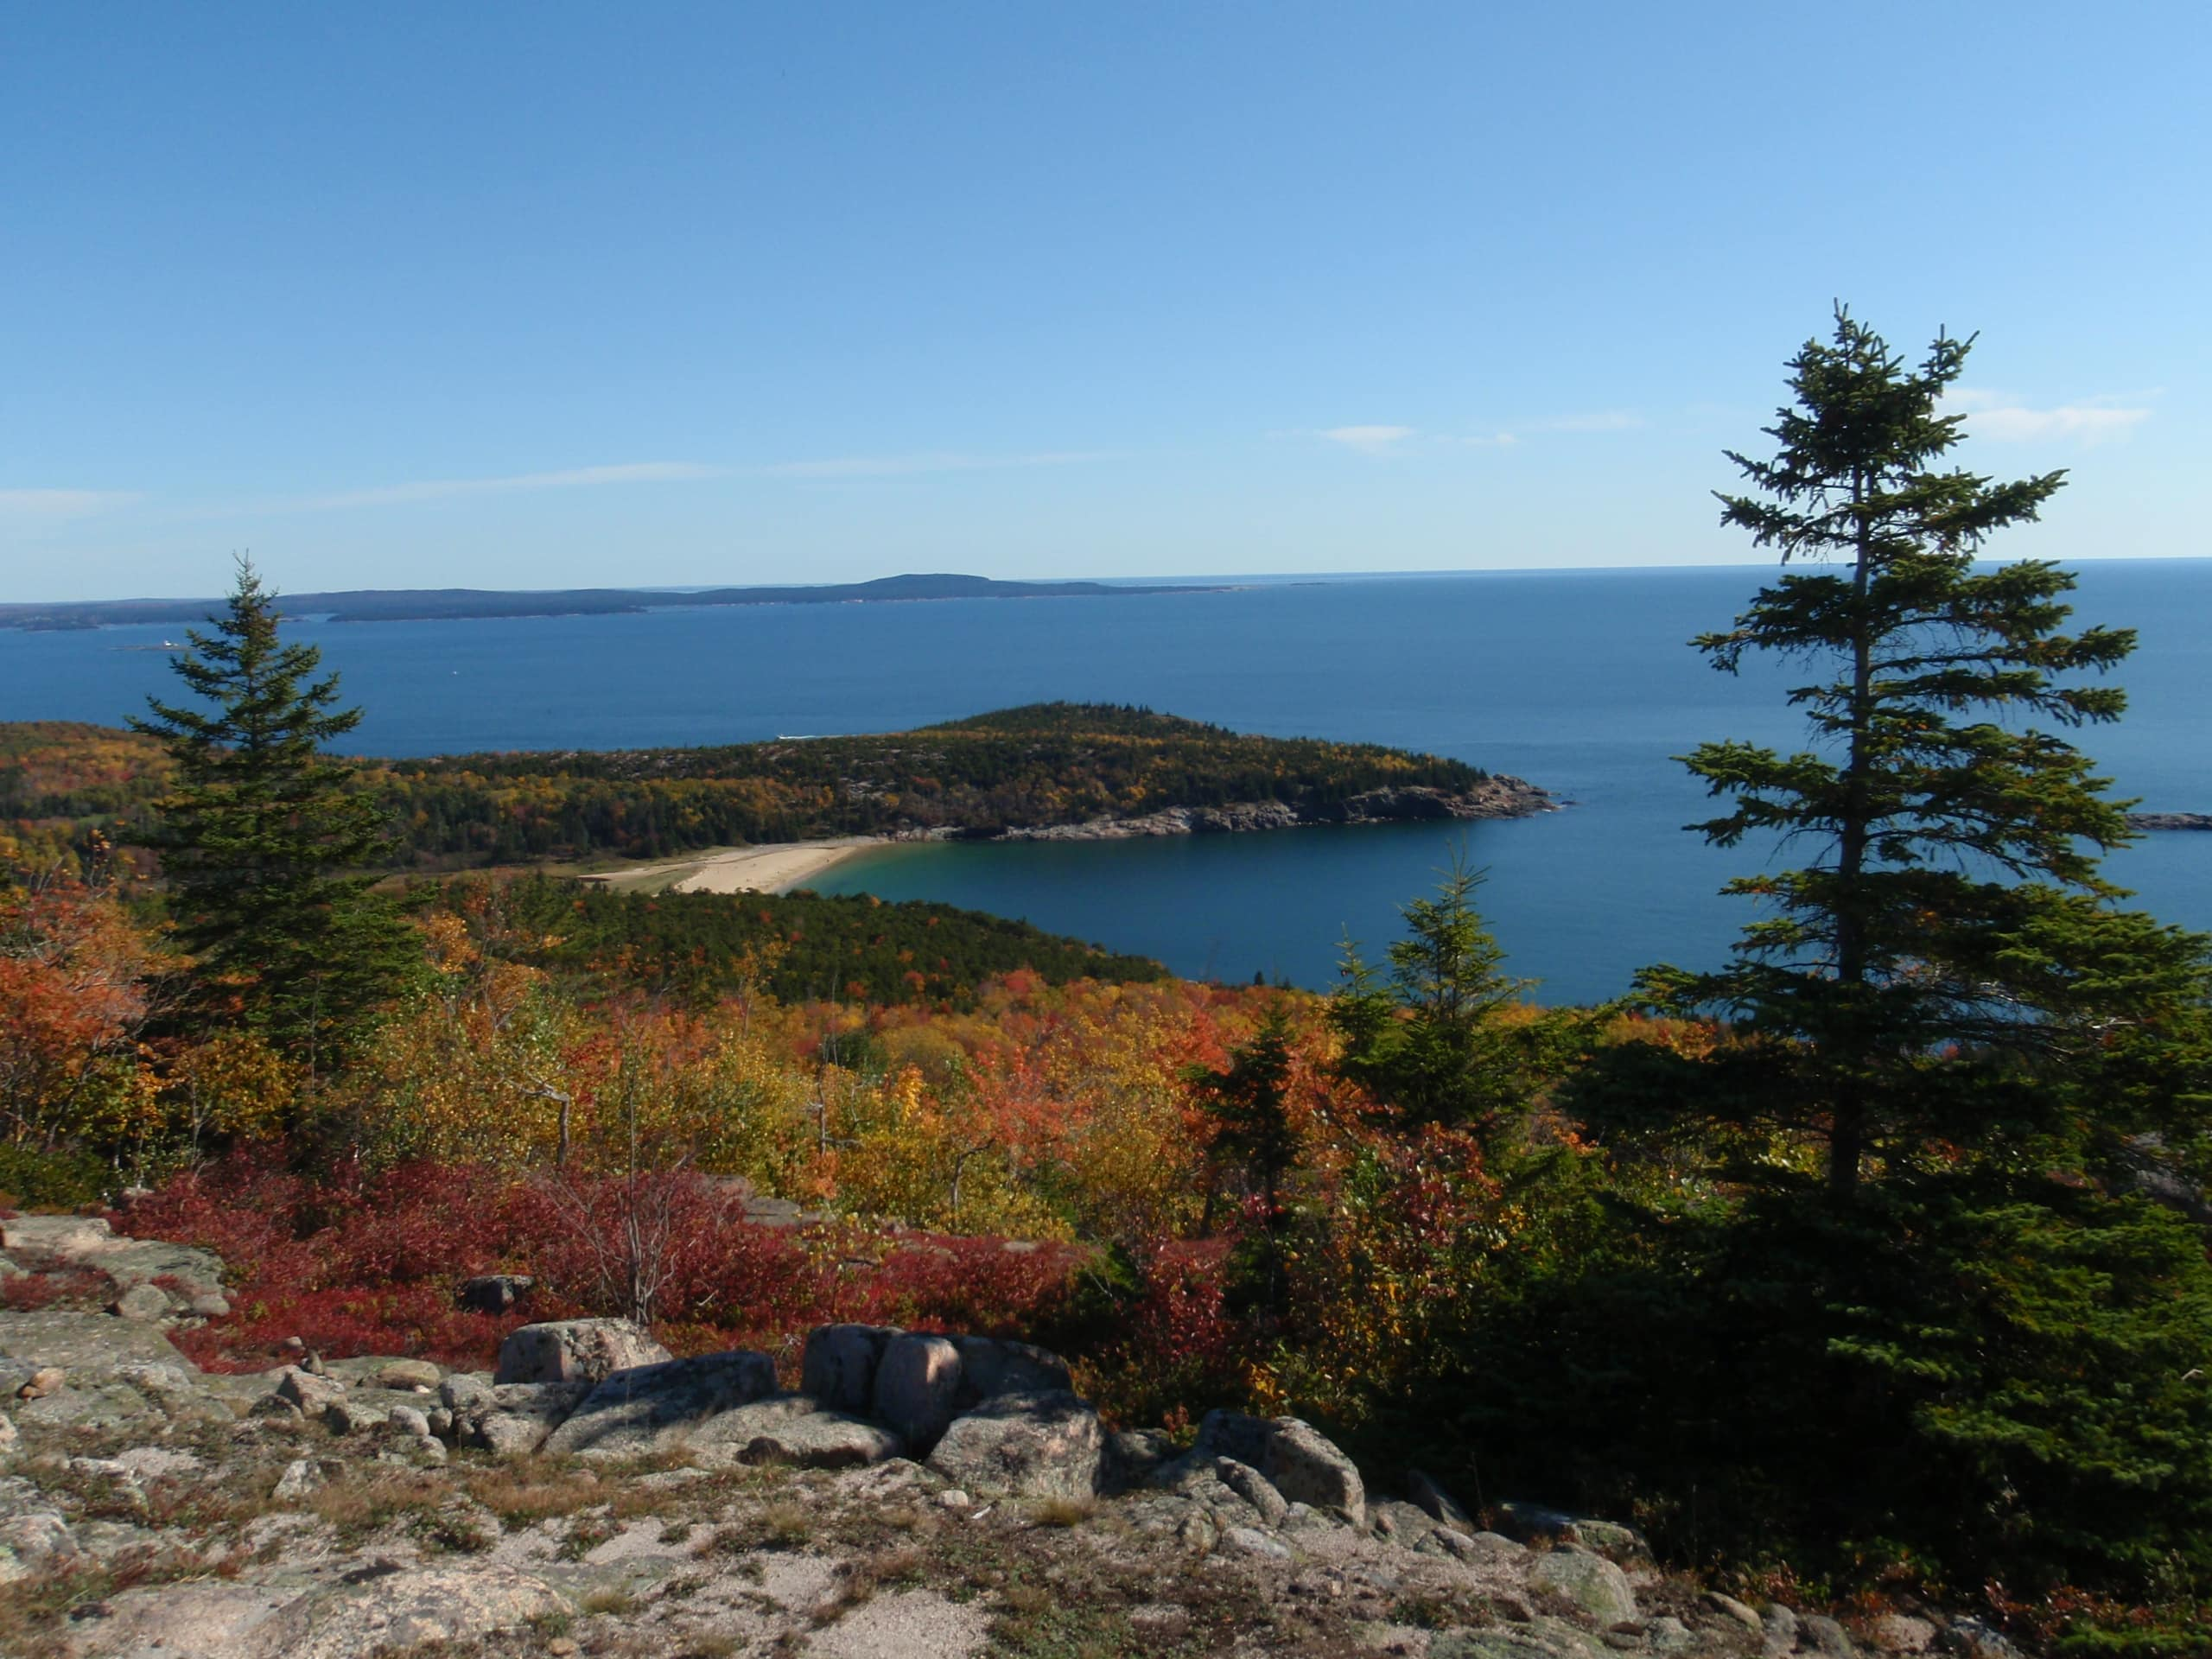 Acadia National Park - The End of a Bender to Remember